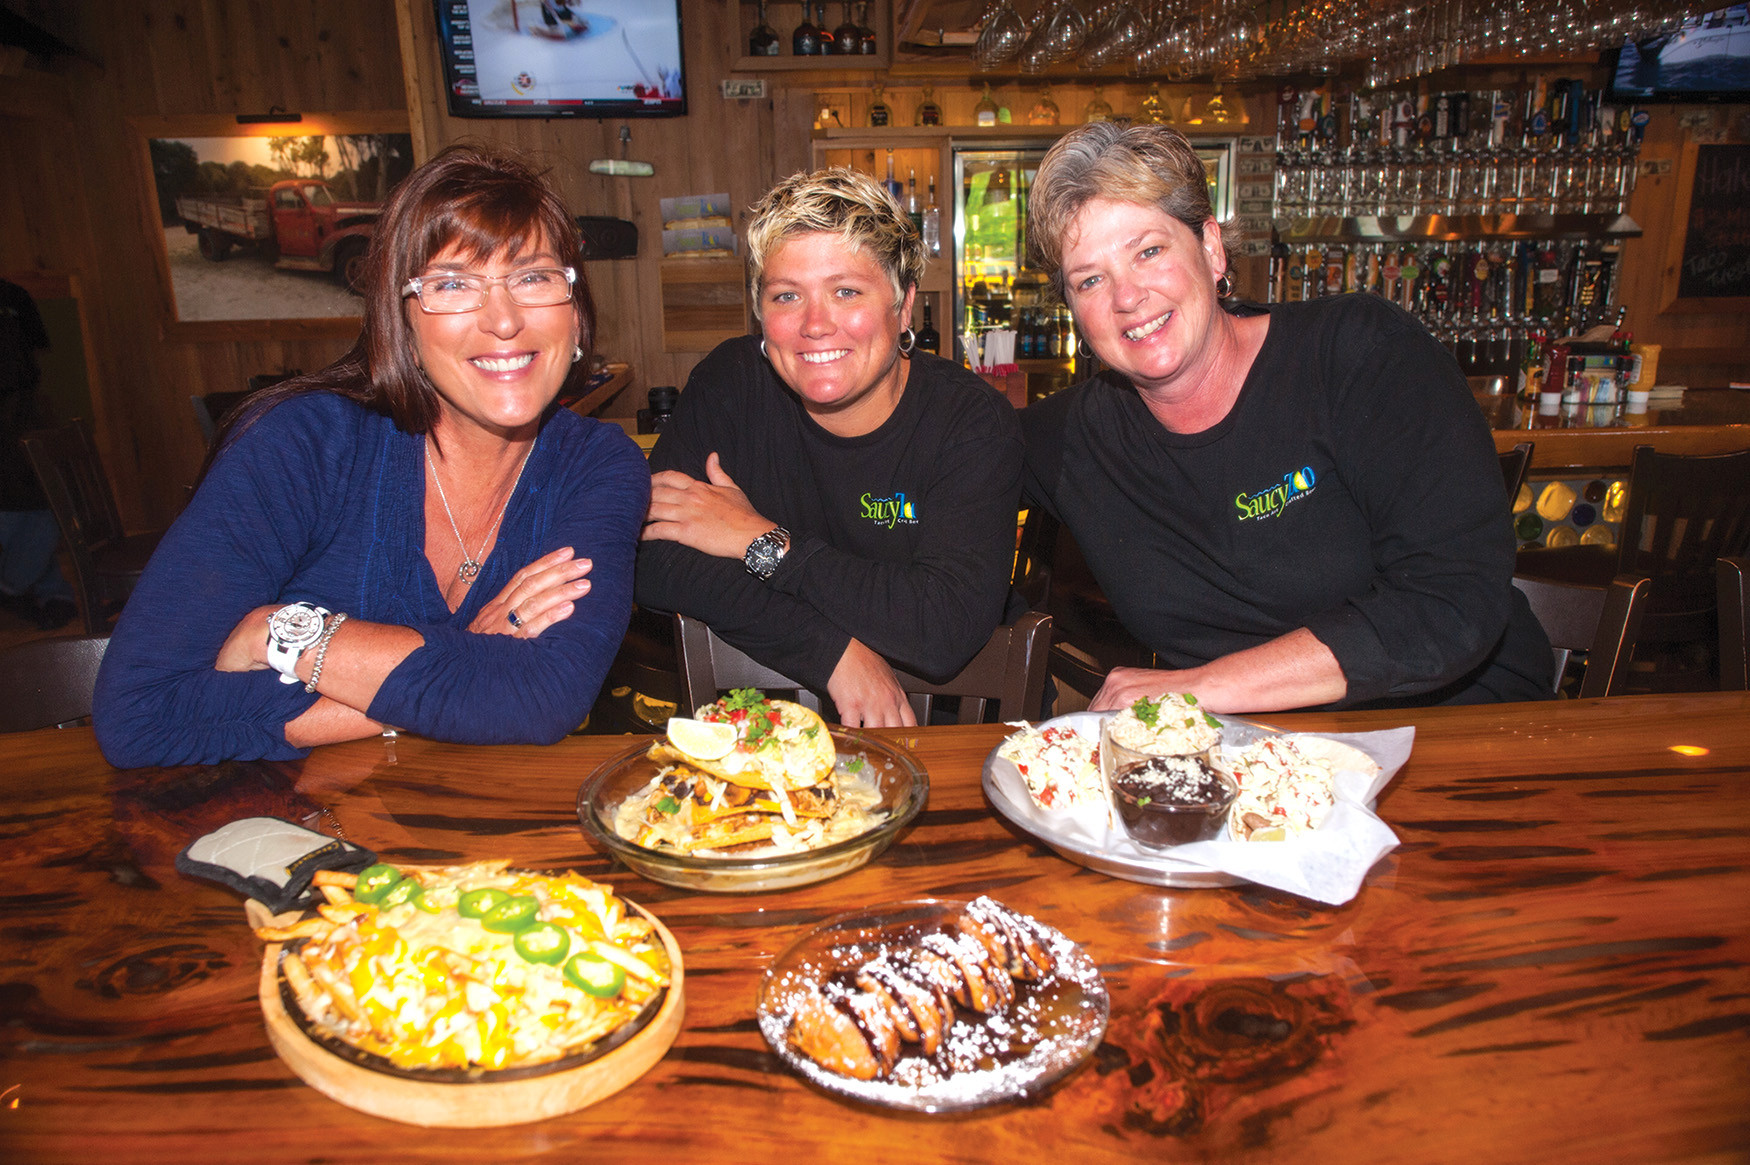 Owners Kristi Kluba, Allison O'Connor and Bonnie Turk of Saucy Taco in St. Johns introduce a wide selection including the Saucy Fries (left), tostada, fried Oreos and the Saucy Taco.